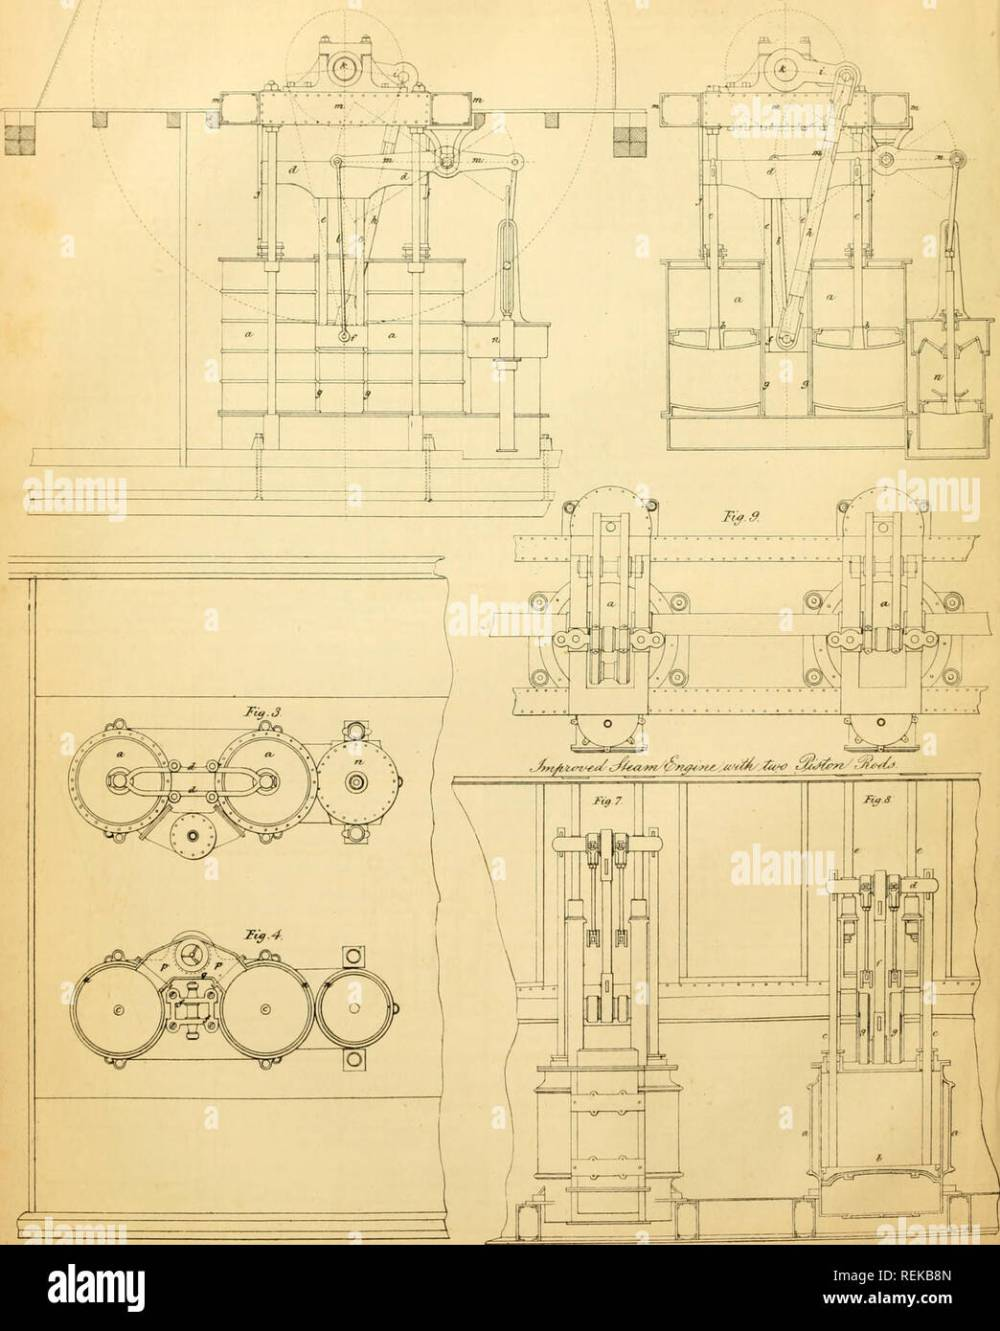 medium resolution of the civil engineer and architect s journal scientific and railway gazette architecture civil